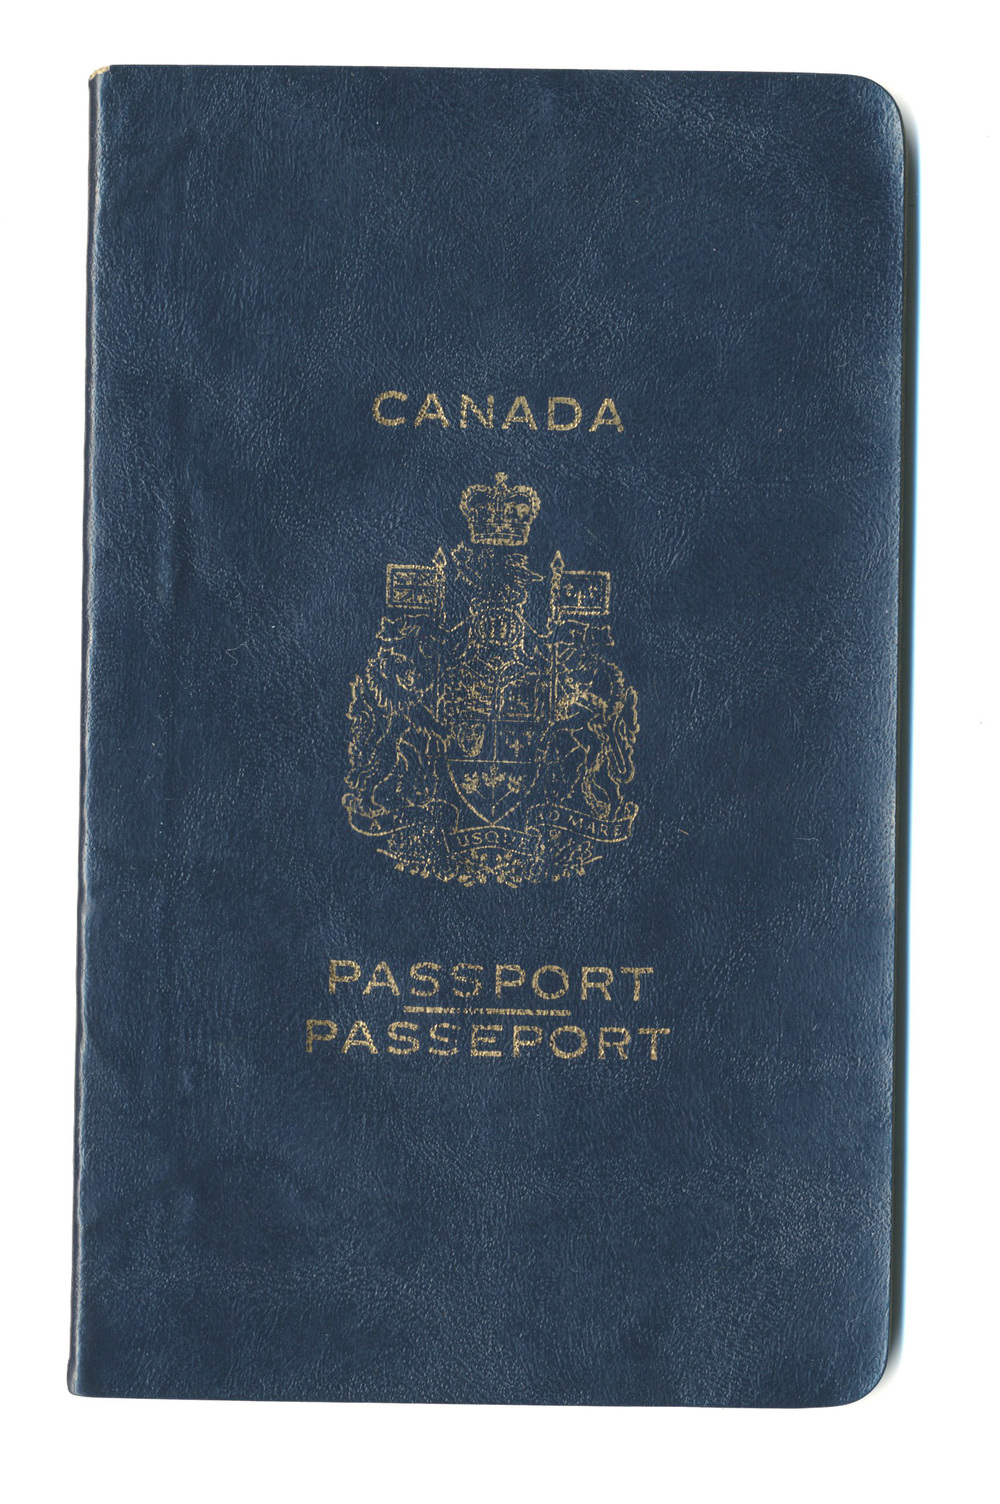 The older Canadian passports were more elegant. Longer aspect ratio, larger size, better typography.